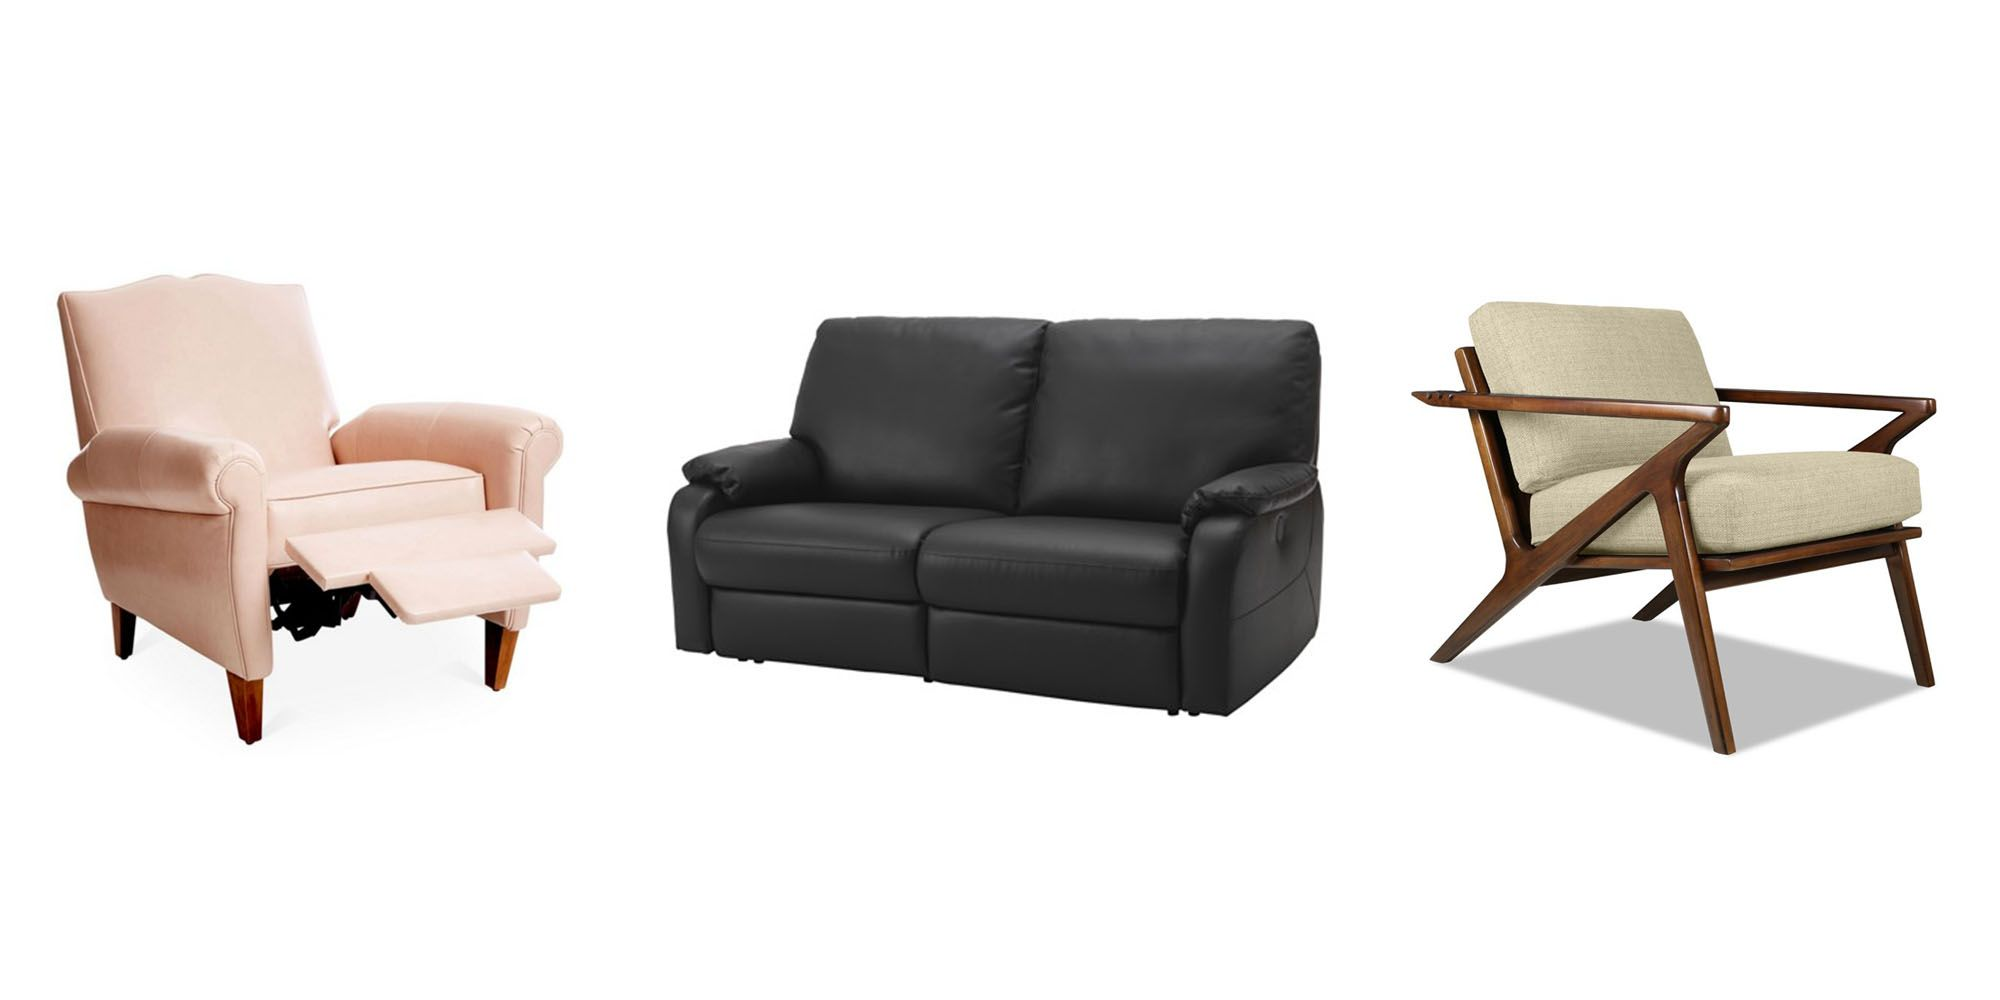 20 Small Recliners Perfect For Your Living Room — Living